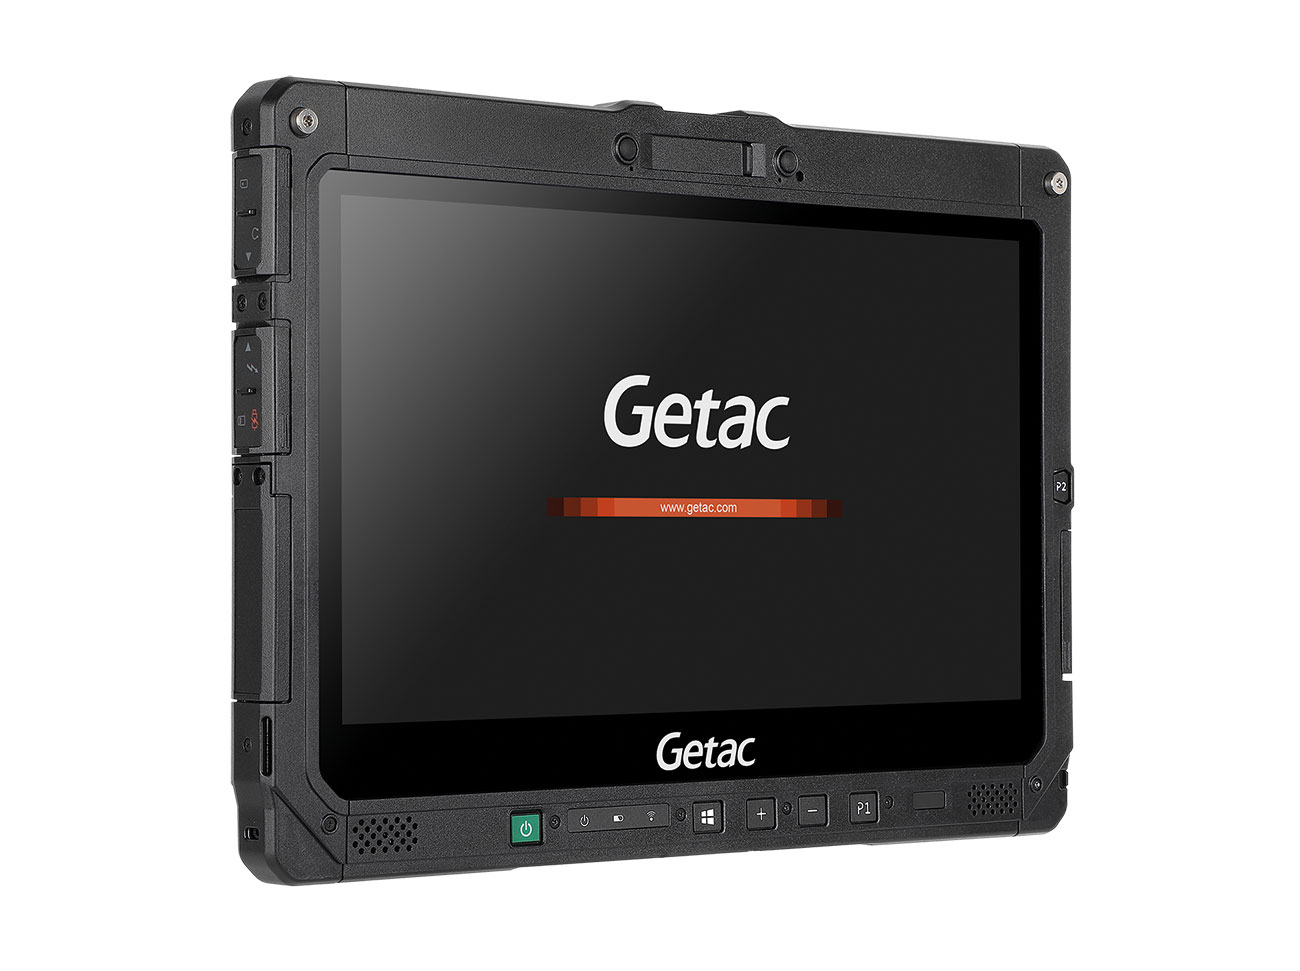 The Getac K120 rugged tablet is used for vital fire safety and critical awareness data.